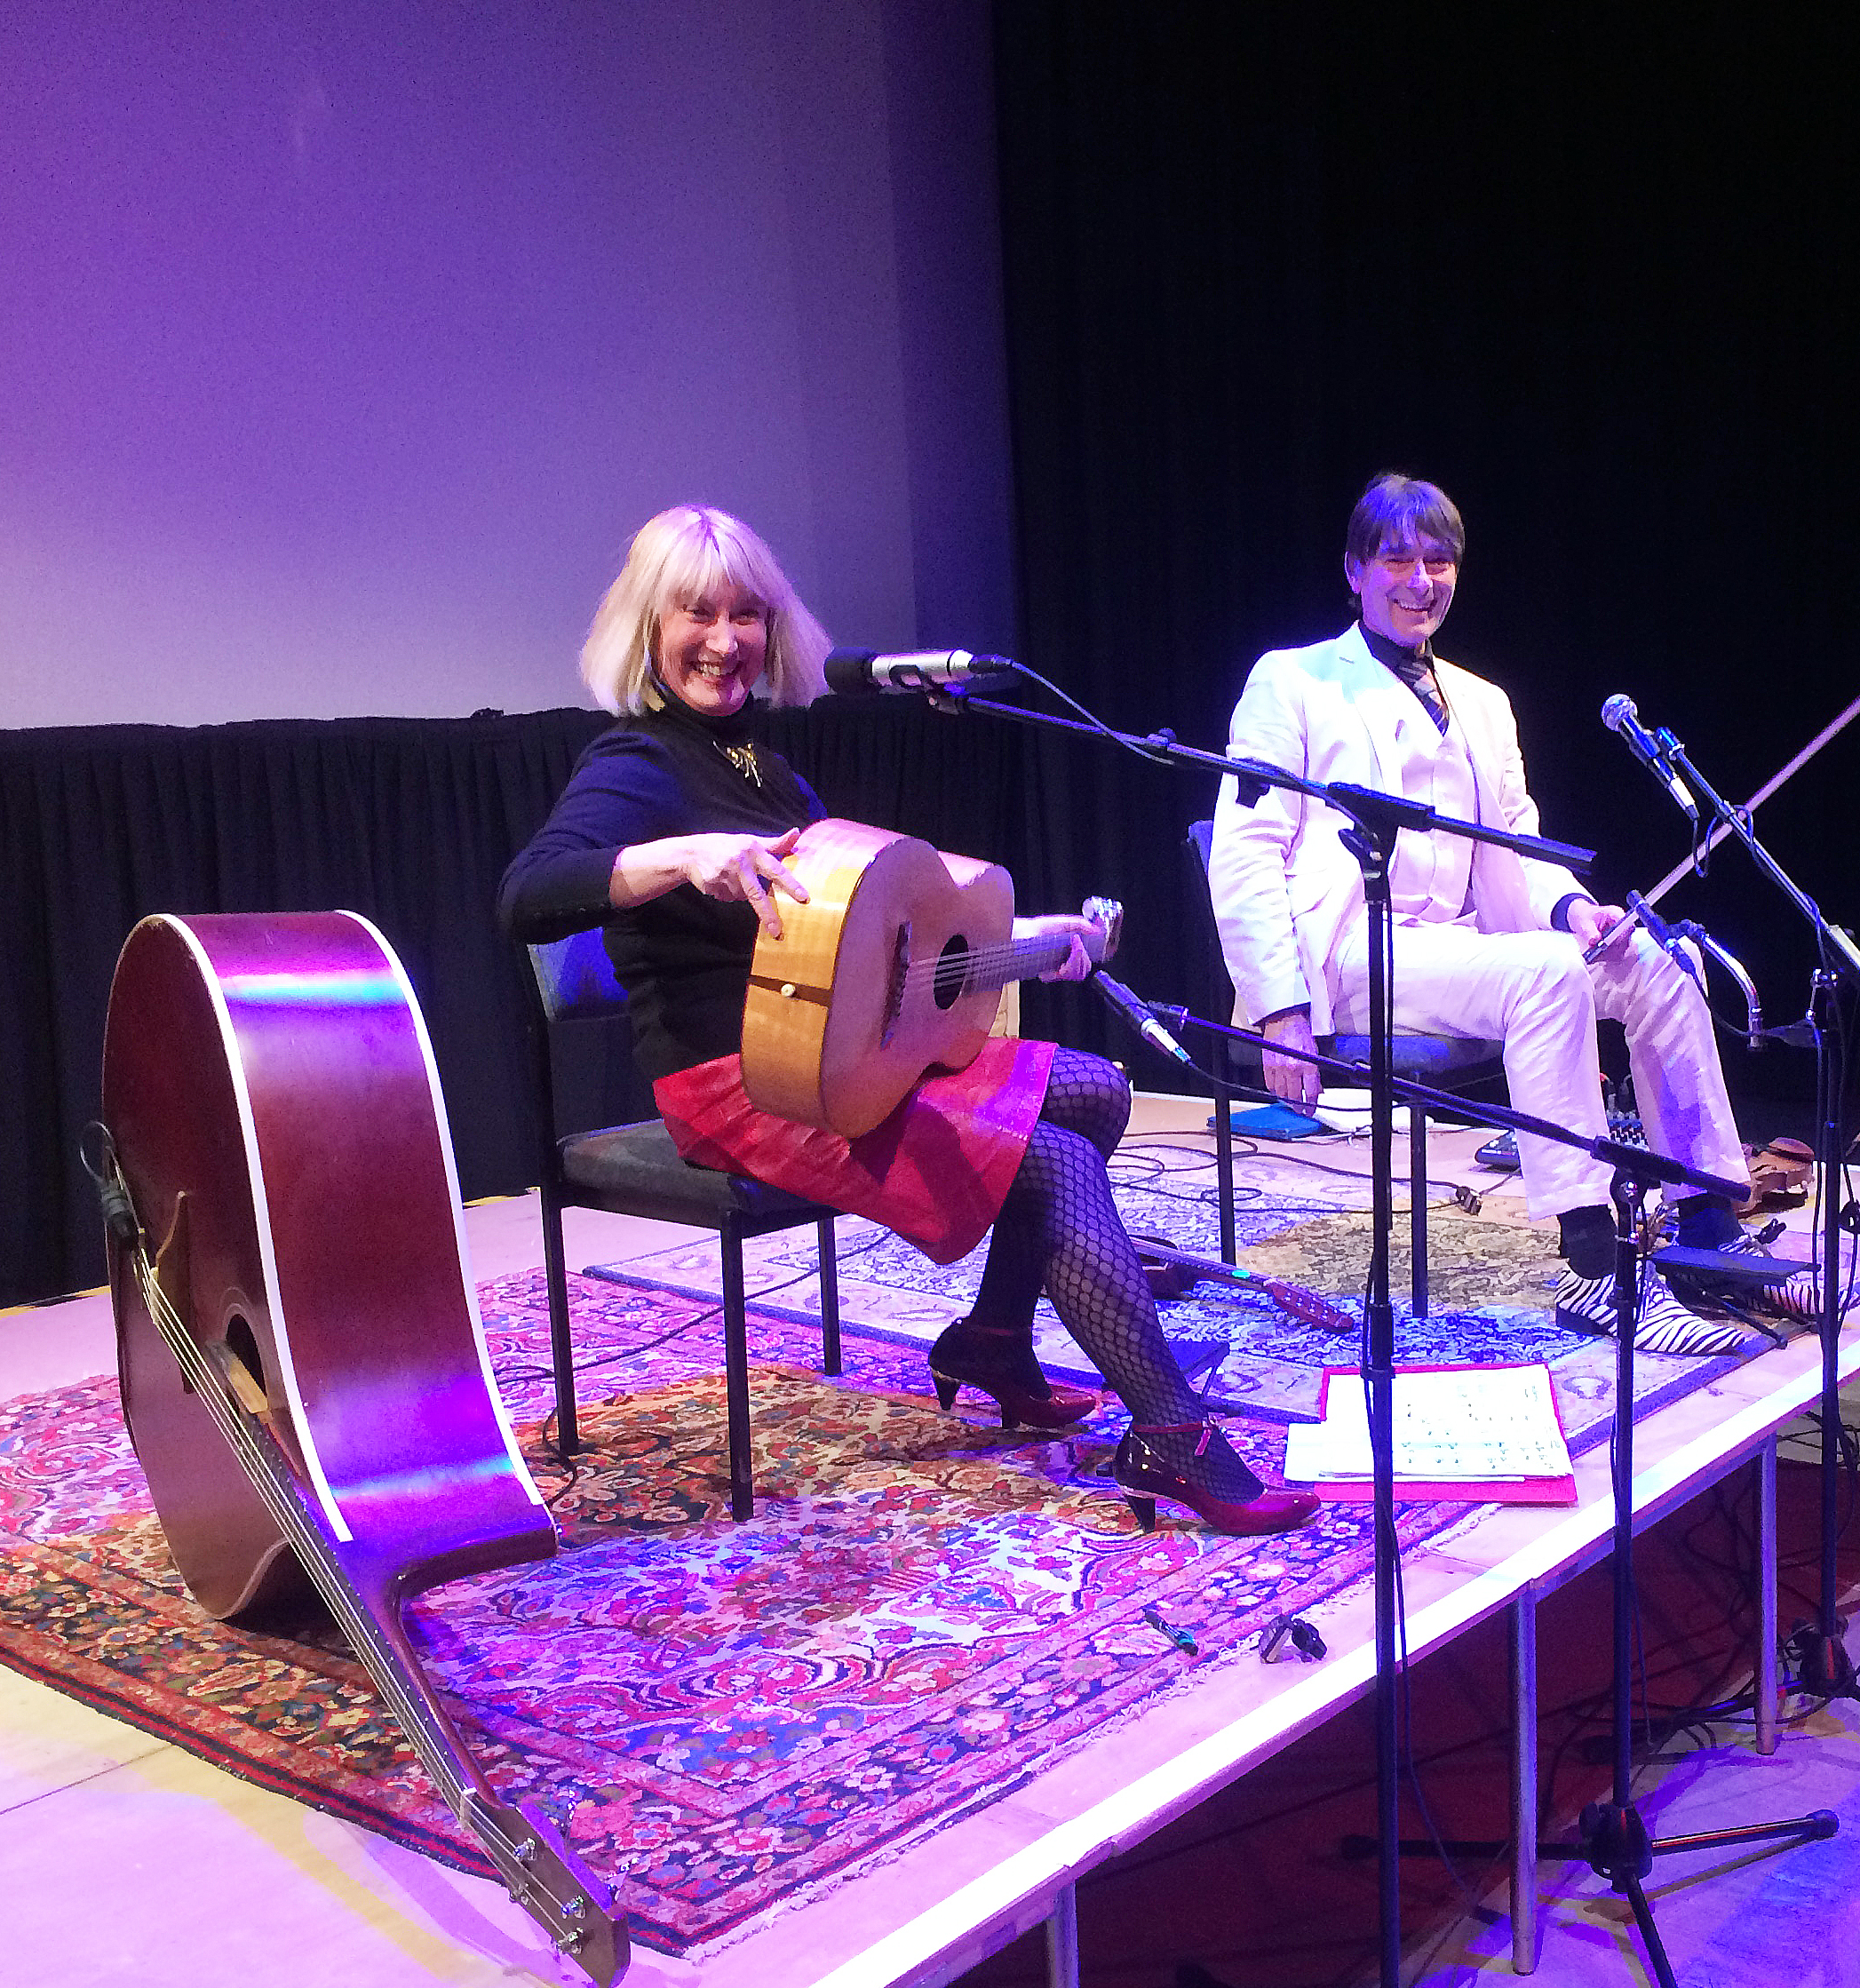 Hilary James and Simon Mayor at the Wildman Theatre, Ilkley Playhouse on March 10, 2019